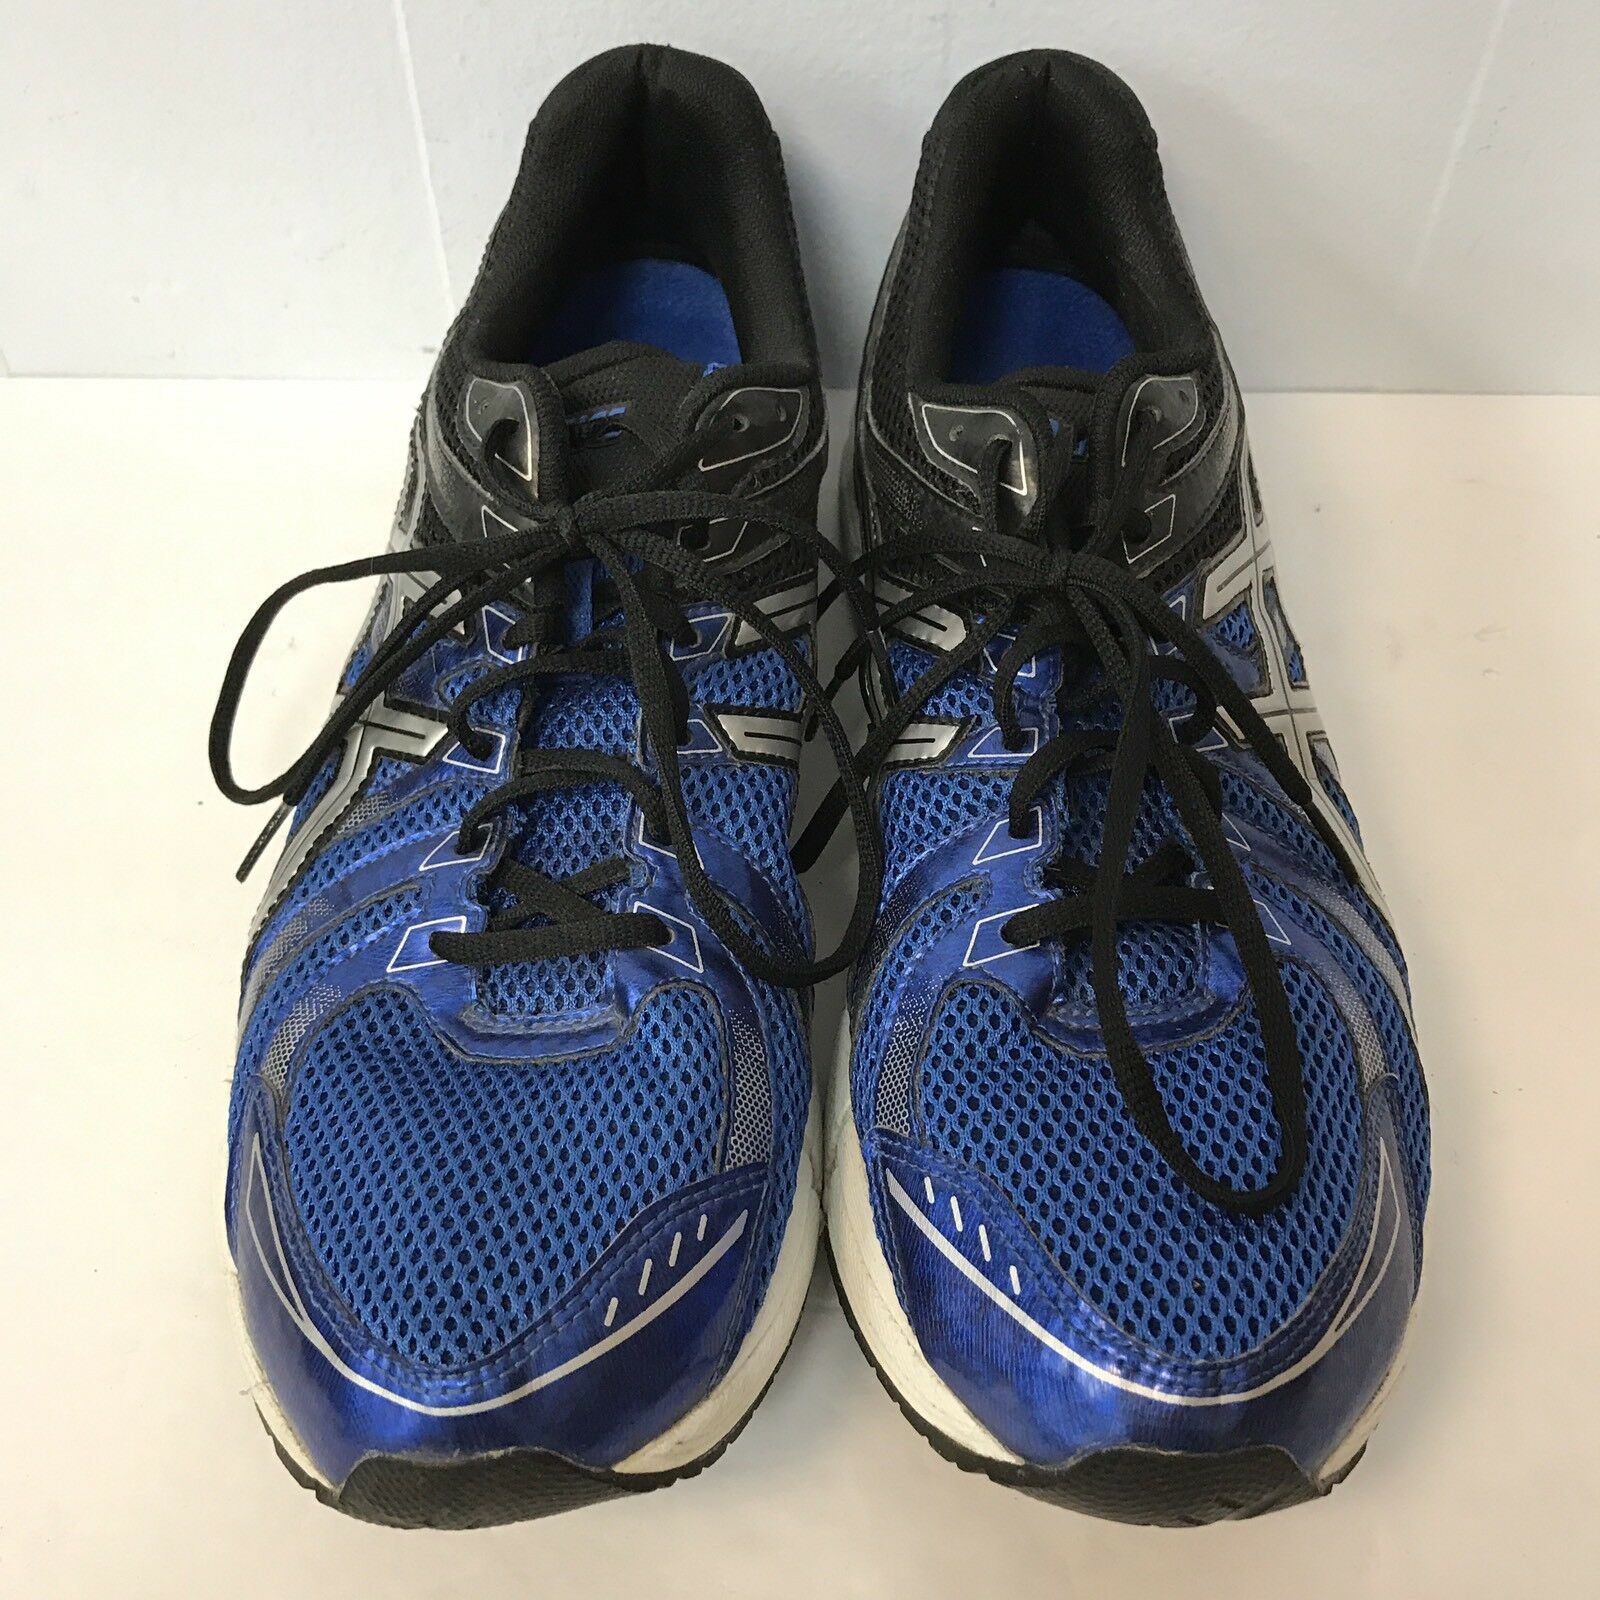 Asics Gel Exalt Running shoes Men Size 13 Great Condition